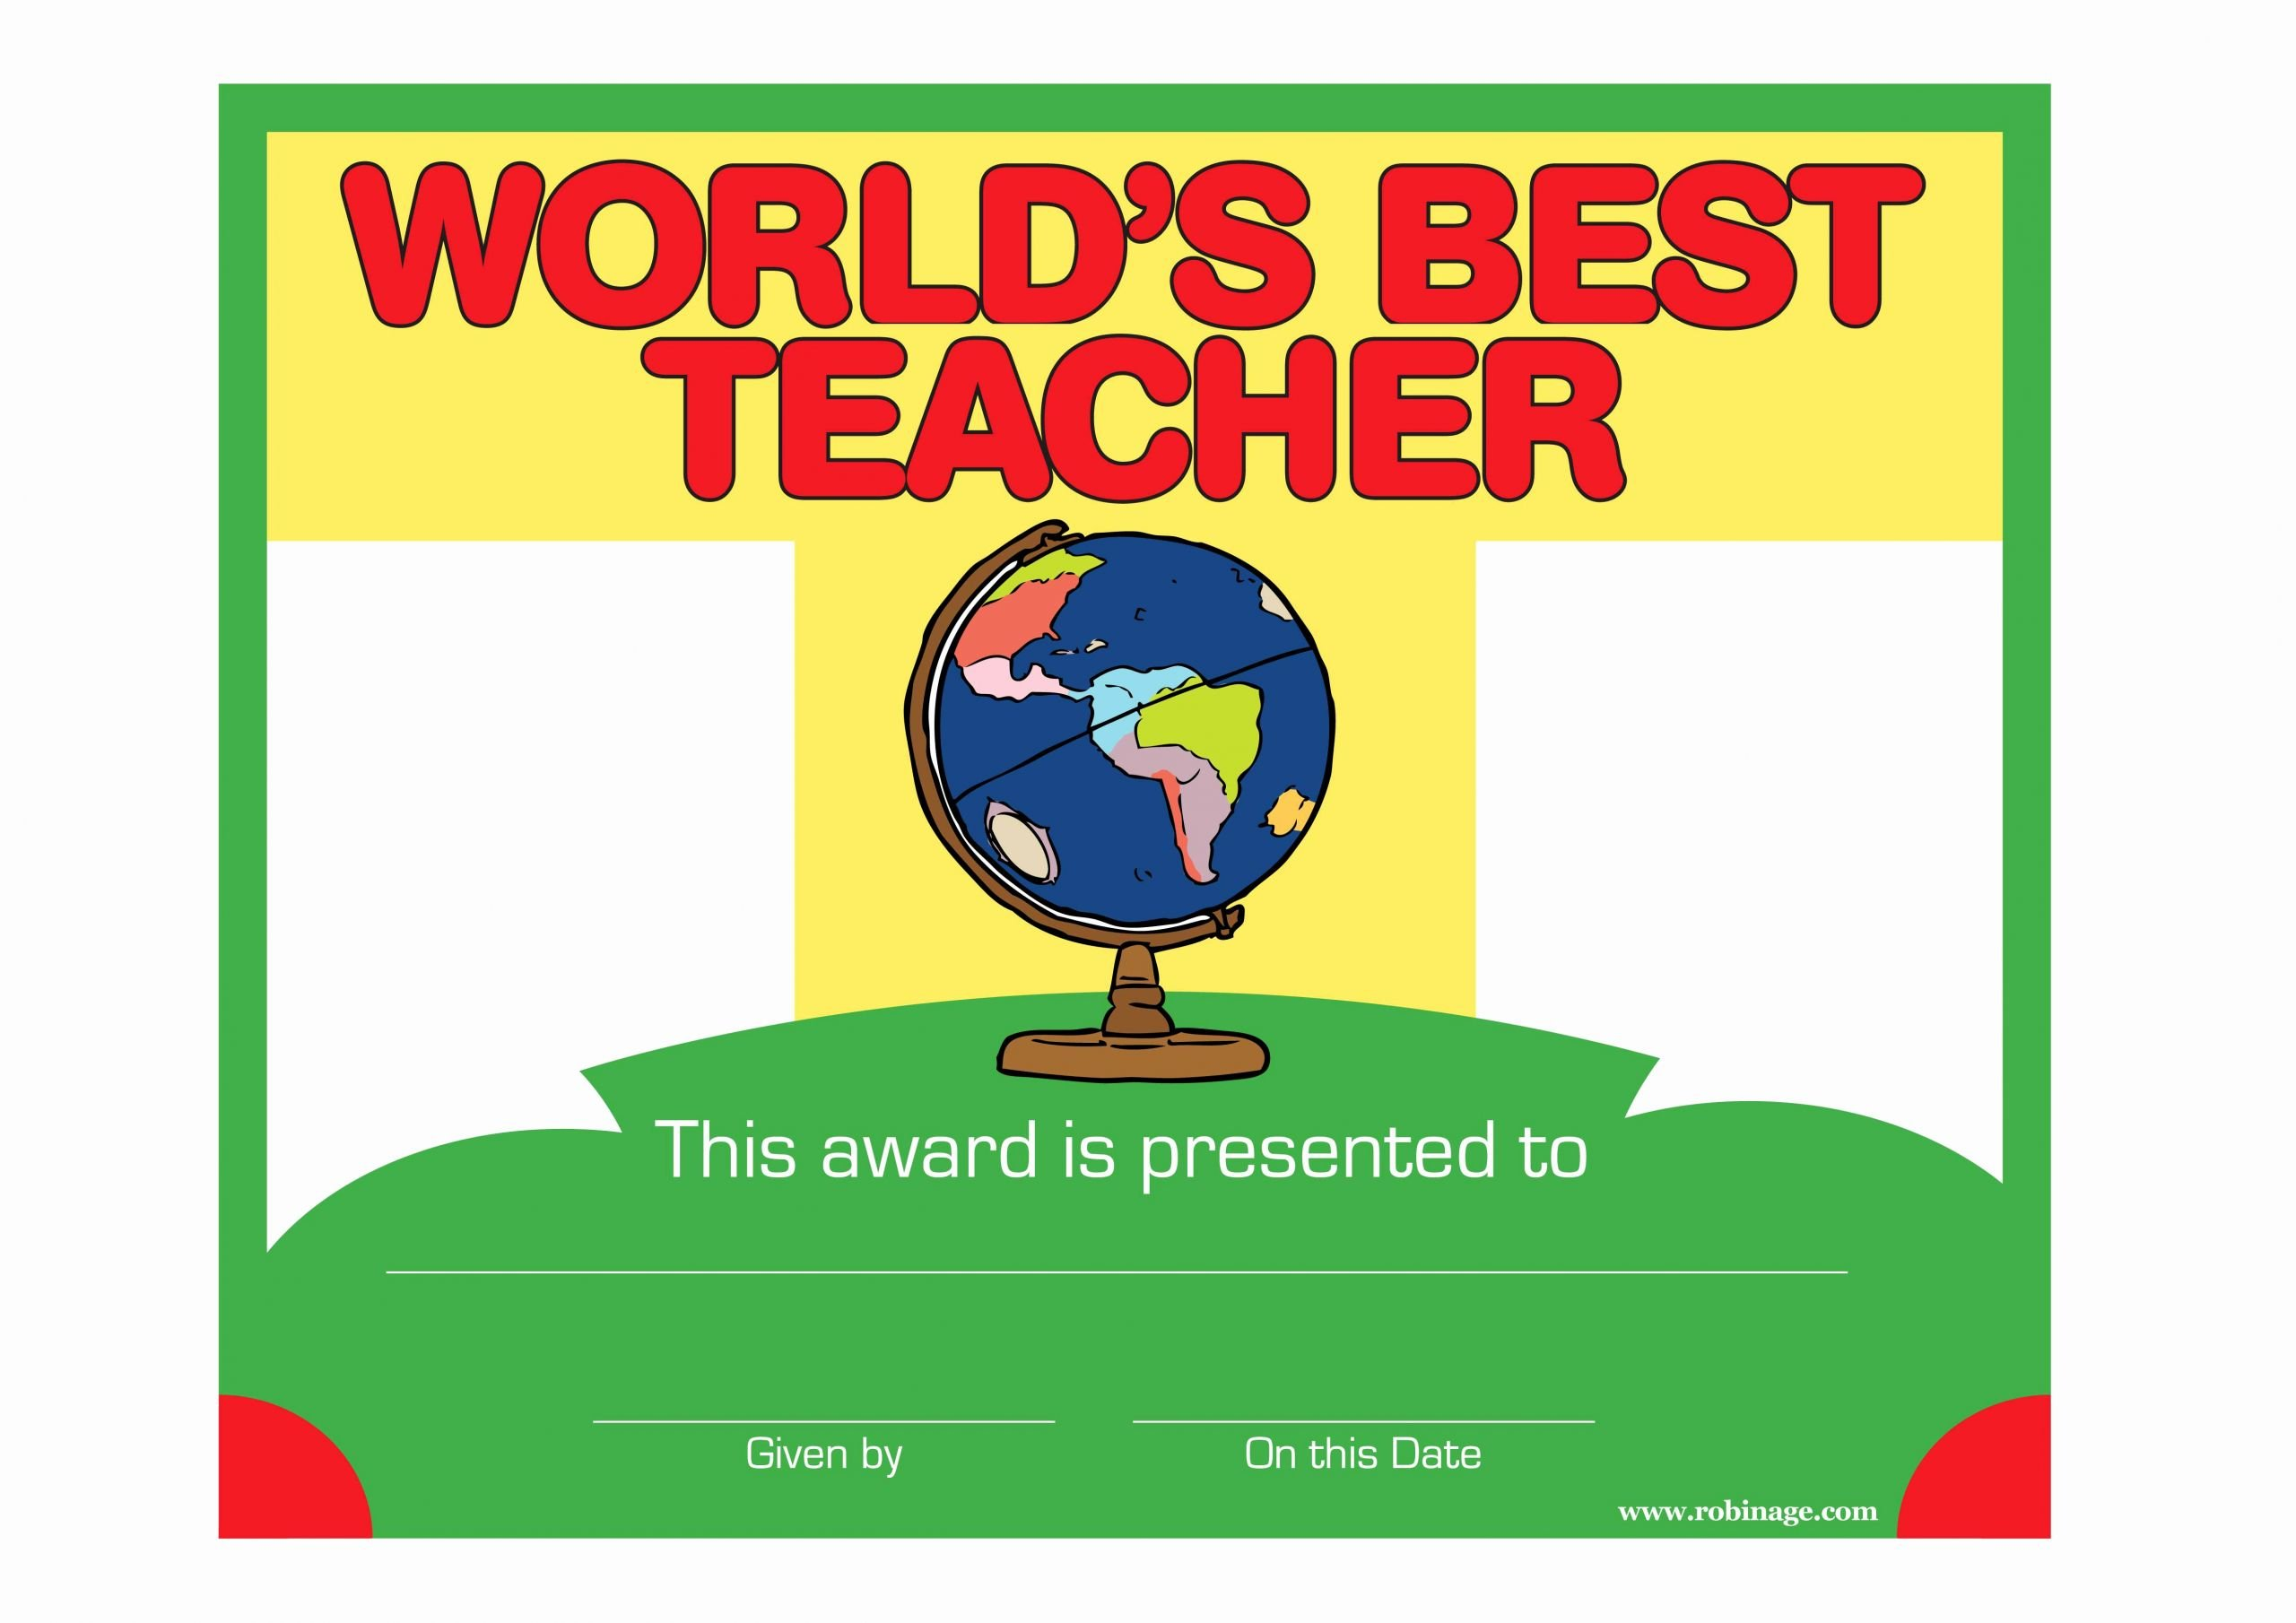 World's Best Teacher Certificate Unique Robinage Download Cool Posters Puzzles Games Cards